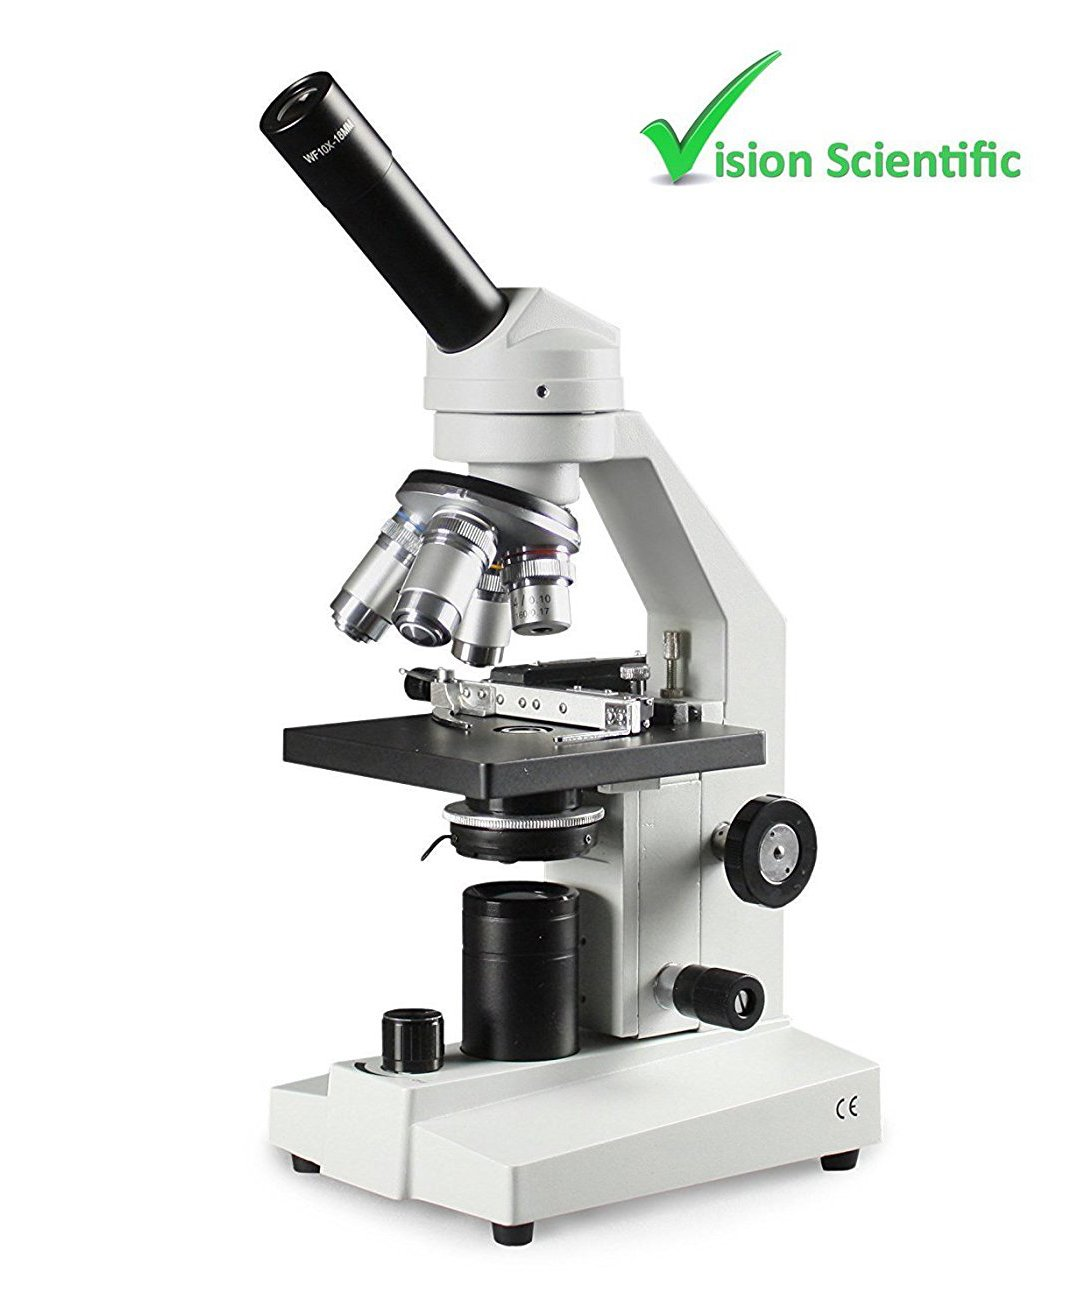 Vision Scientific VME0020X-E3-M LED Microscope, 10x WF and 25x WF Eyepiece, 40x – 2500x Magnification, LED Illumination with Intensity Control, 1.25 N.A Abbe Condenser, Mechanical Stage